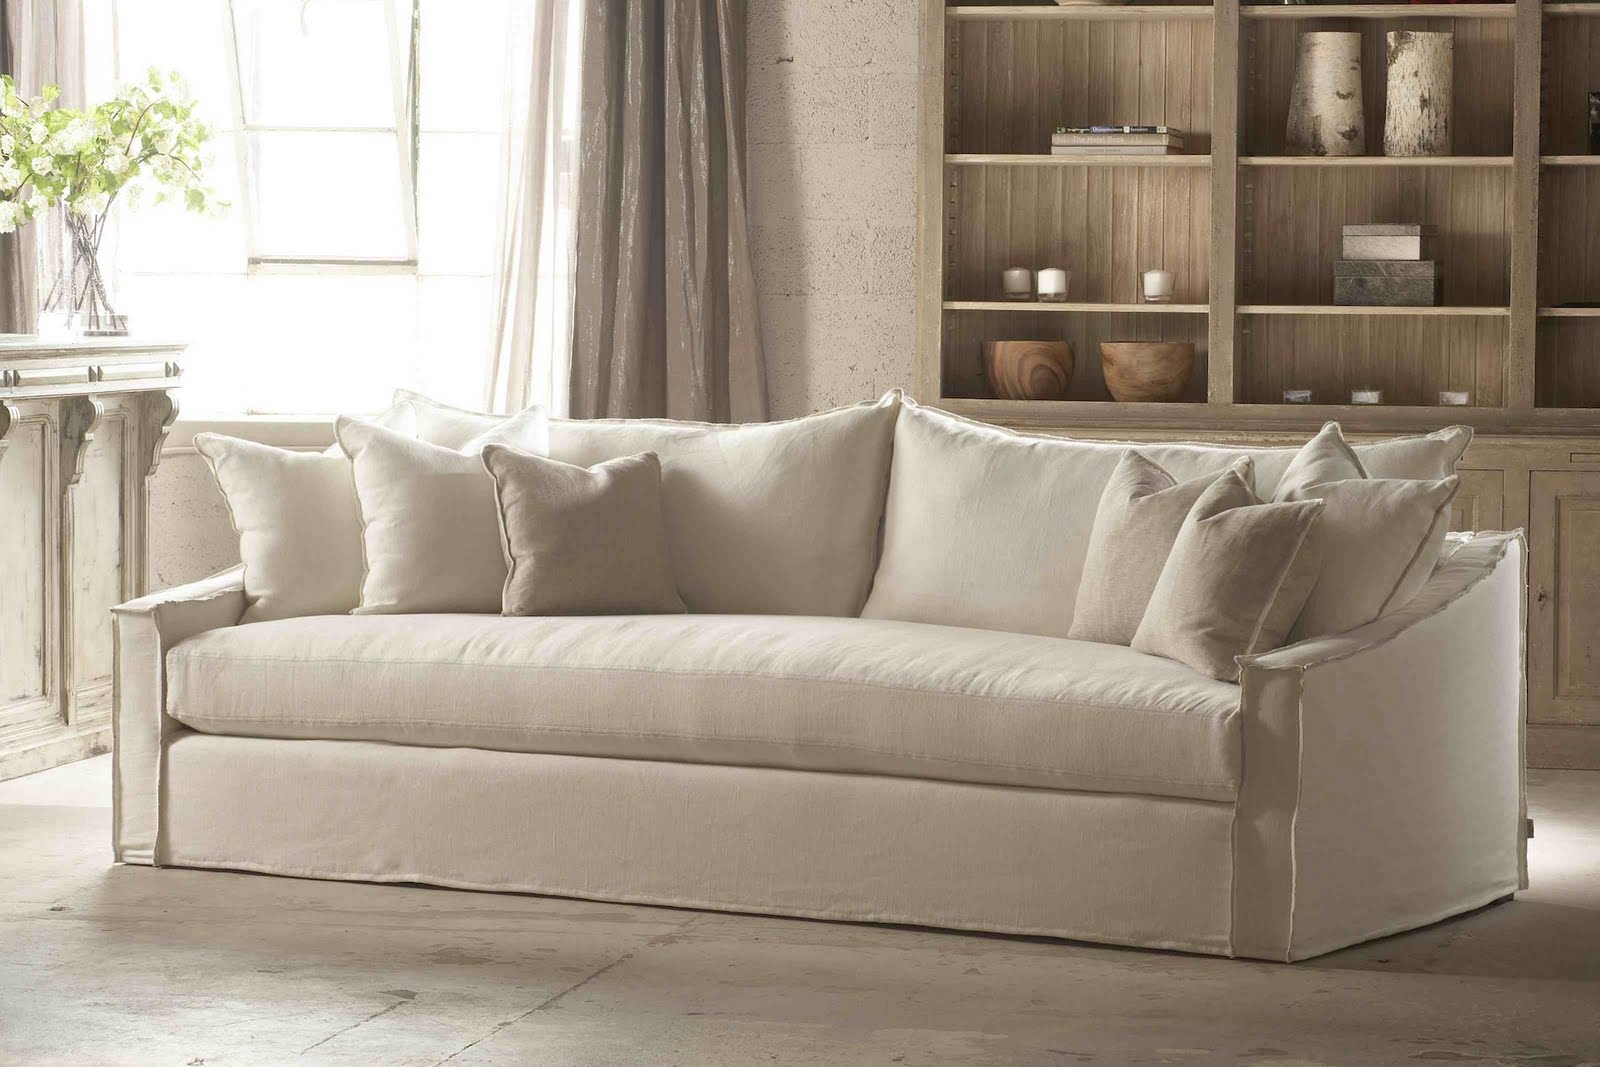 Comfortable white slipcovered sofa that brings for White divan chair